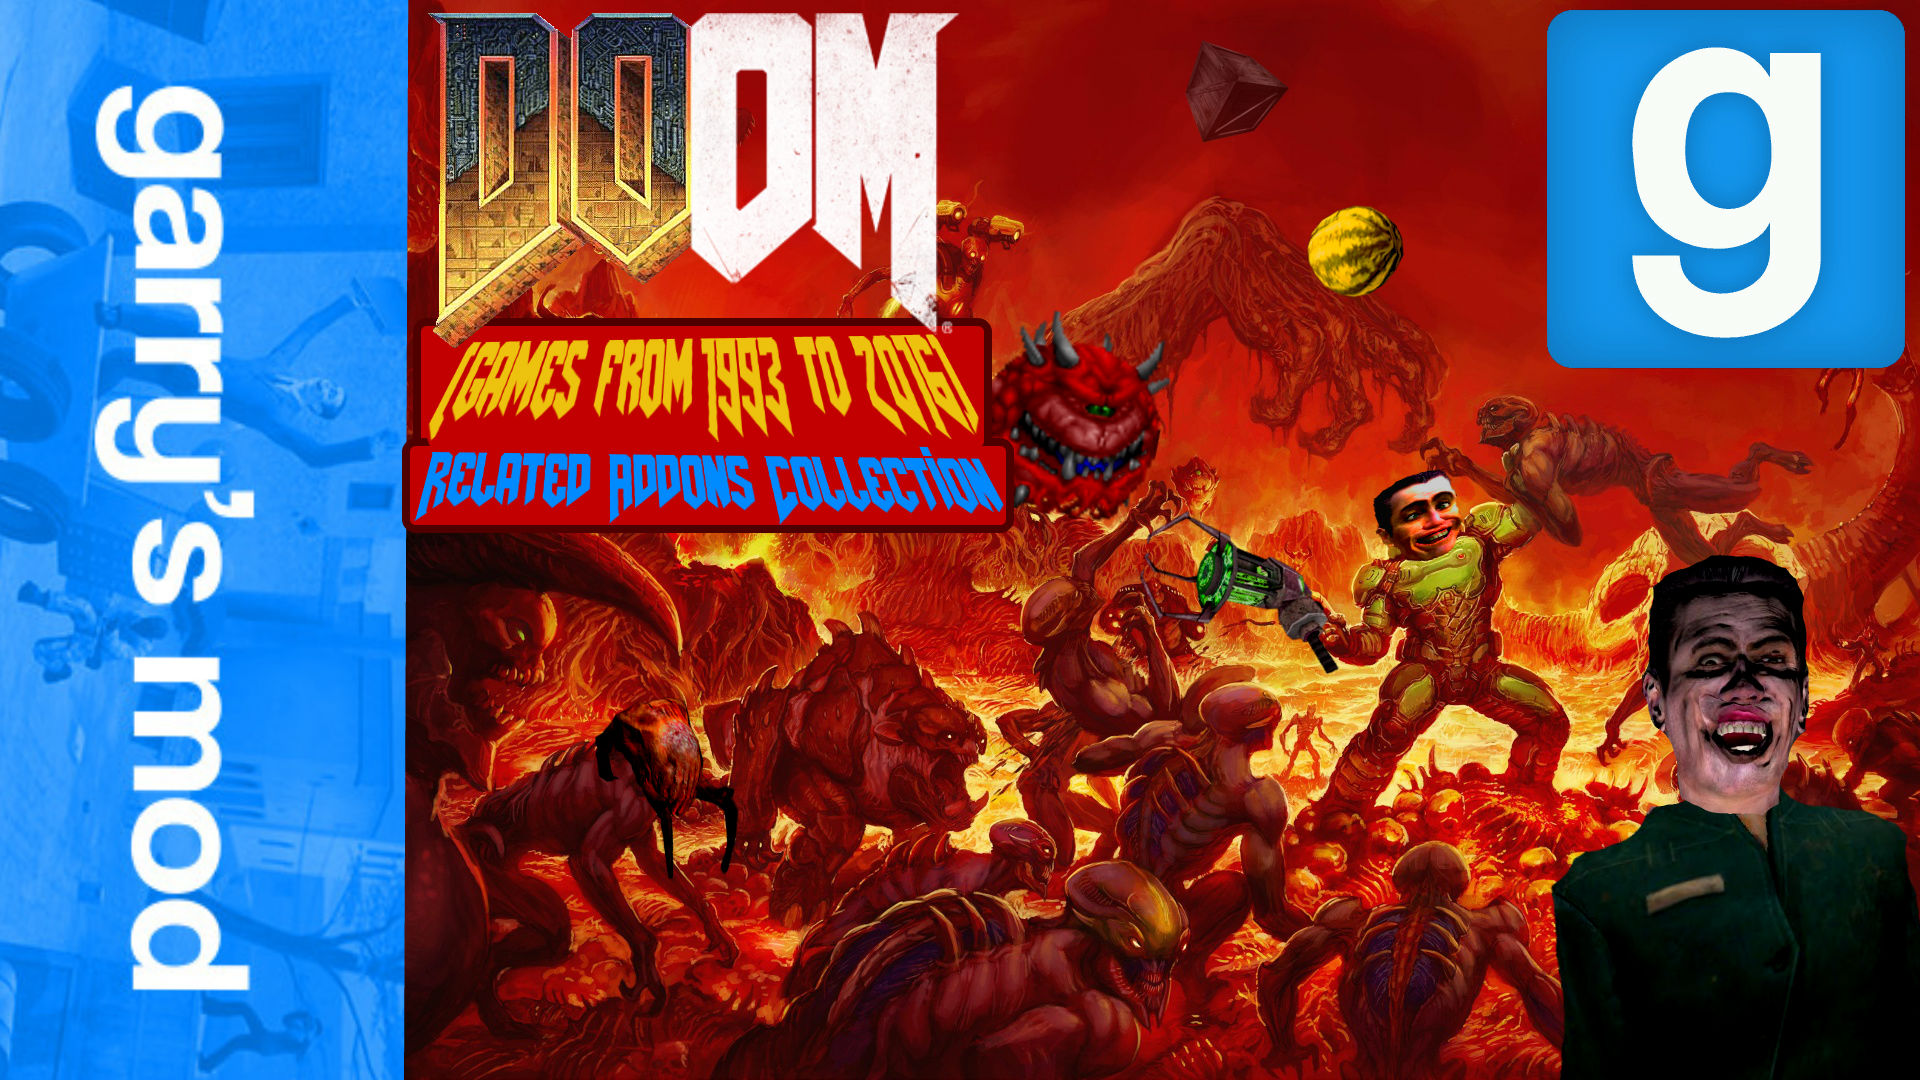 Steam Workshop :: Doom (from 1993 to 2016) related Addons